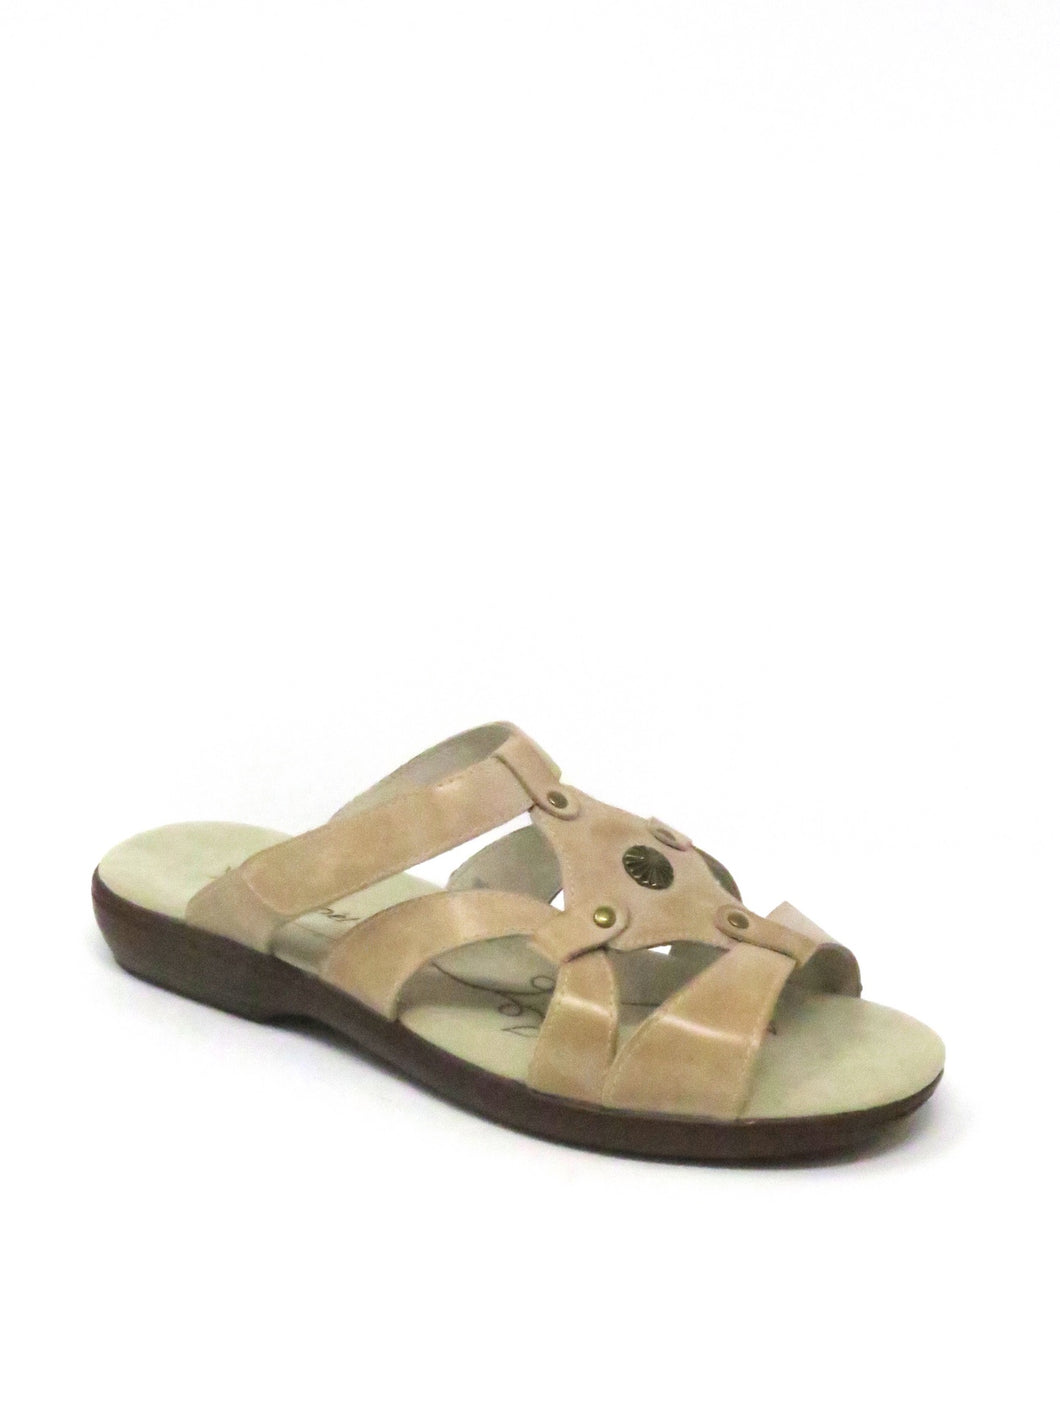 Propet | W0307753 | Dominica Sandal | Clay Waxed